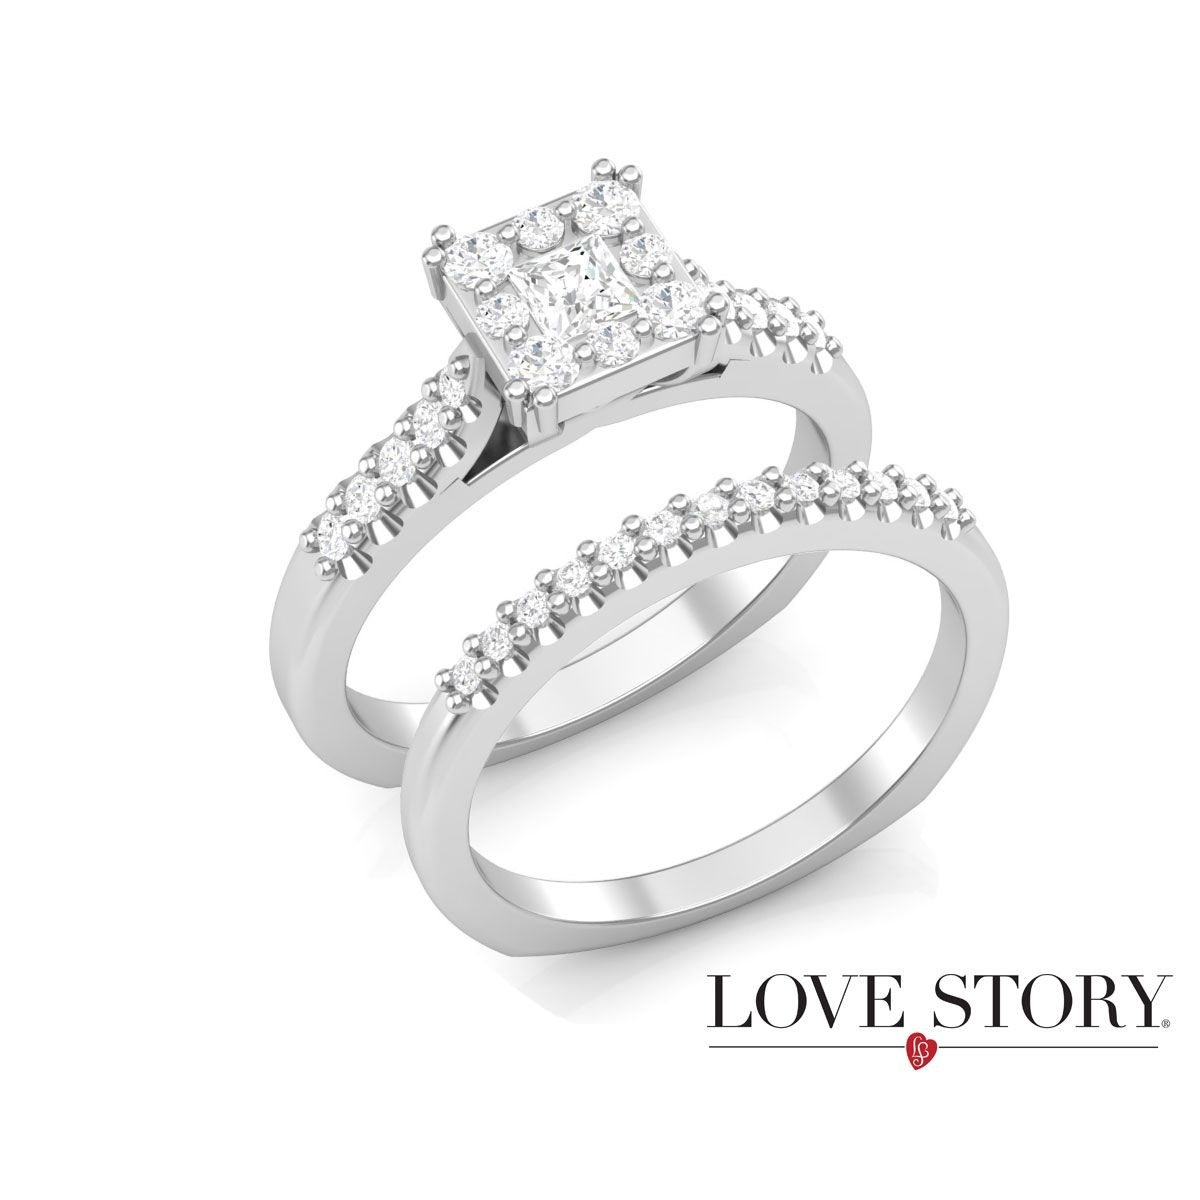 Only You® Square Frame Diamond Bridal Set In White Gold, 5/8Ctw Throughout Current Diamond Hexagonal Frame Vintage Style Wedding Bands (View 14 of 15)